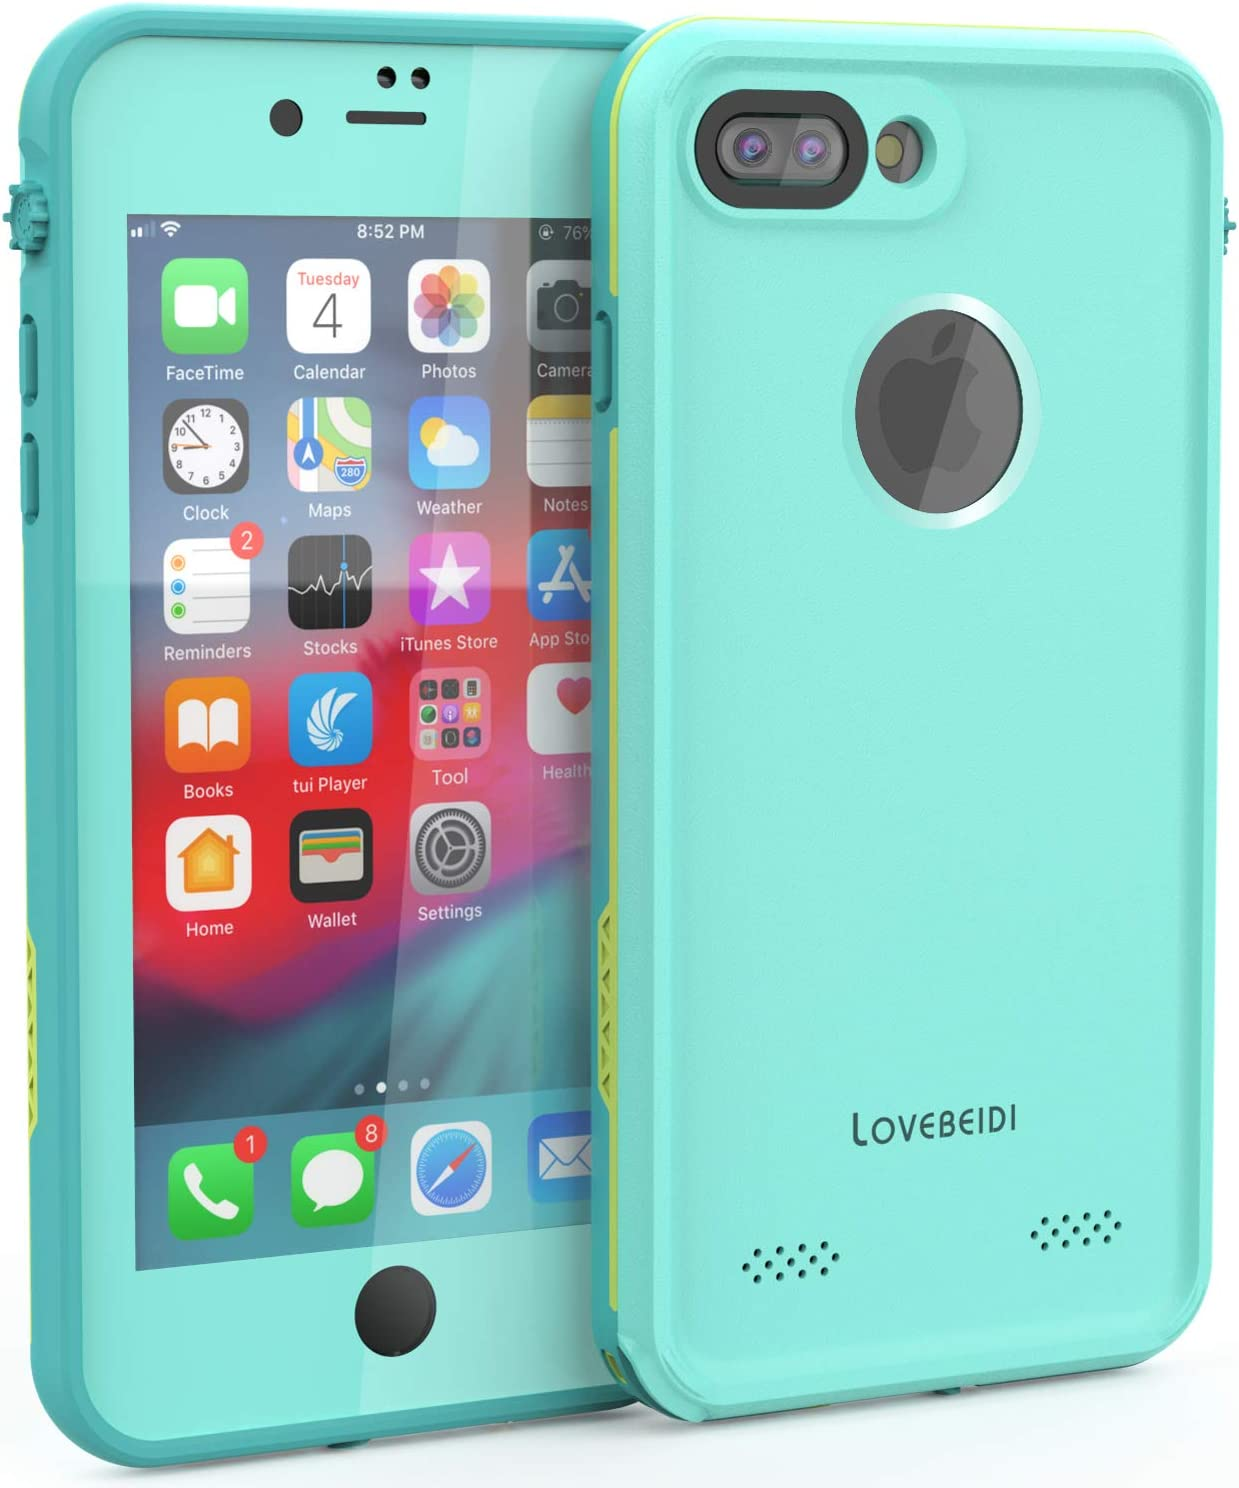 """LOVE BEIDI iPhone 8 7 Plus Waterproof Case Cover Built-in Screen Protector Fully Sealed Life Shockproof Snowproof Underwater Protective Cases for iPhone iPhone 8 7 Plus 5.5"""" (Cyan/Green/Mint Green)"""